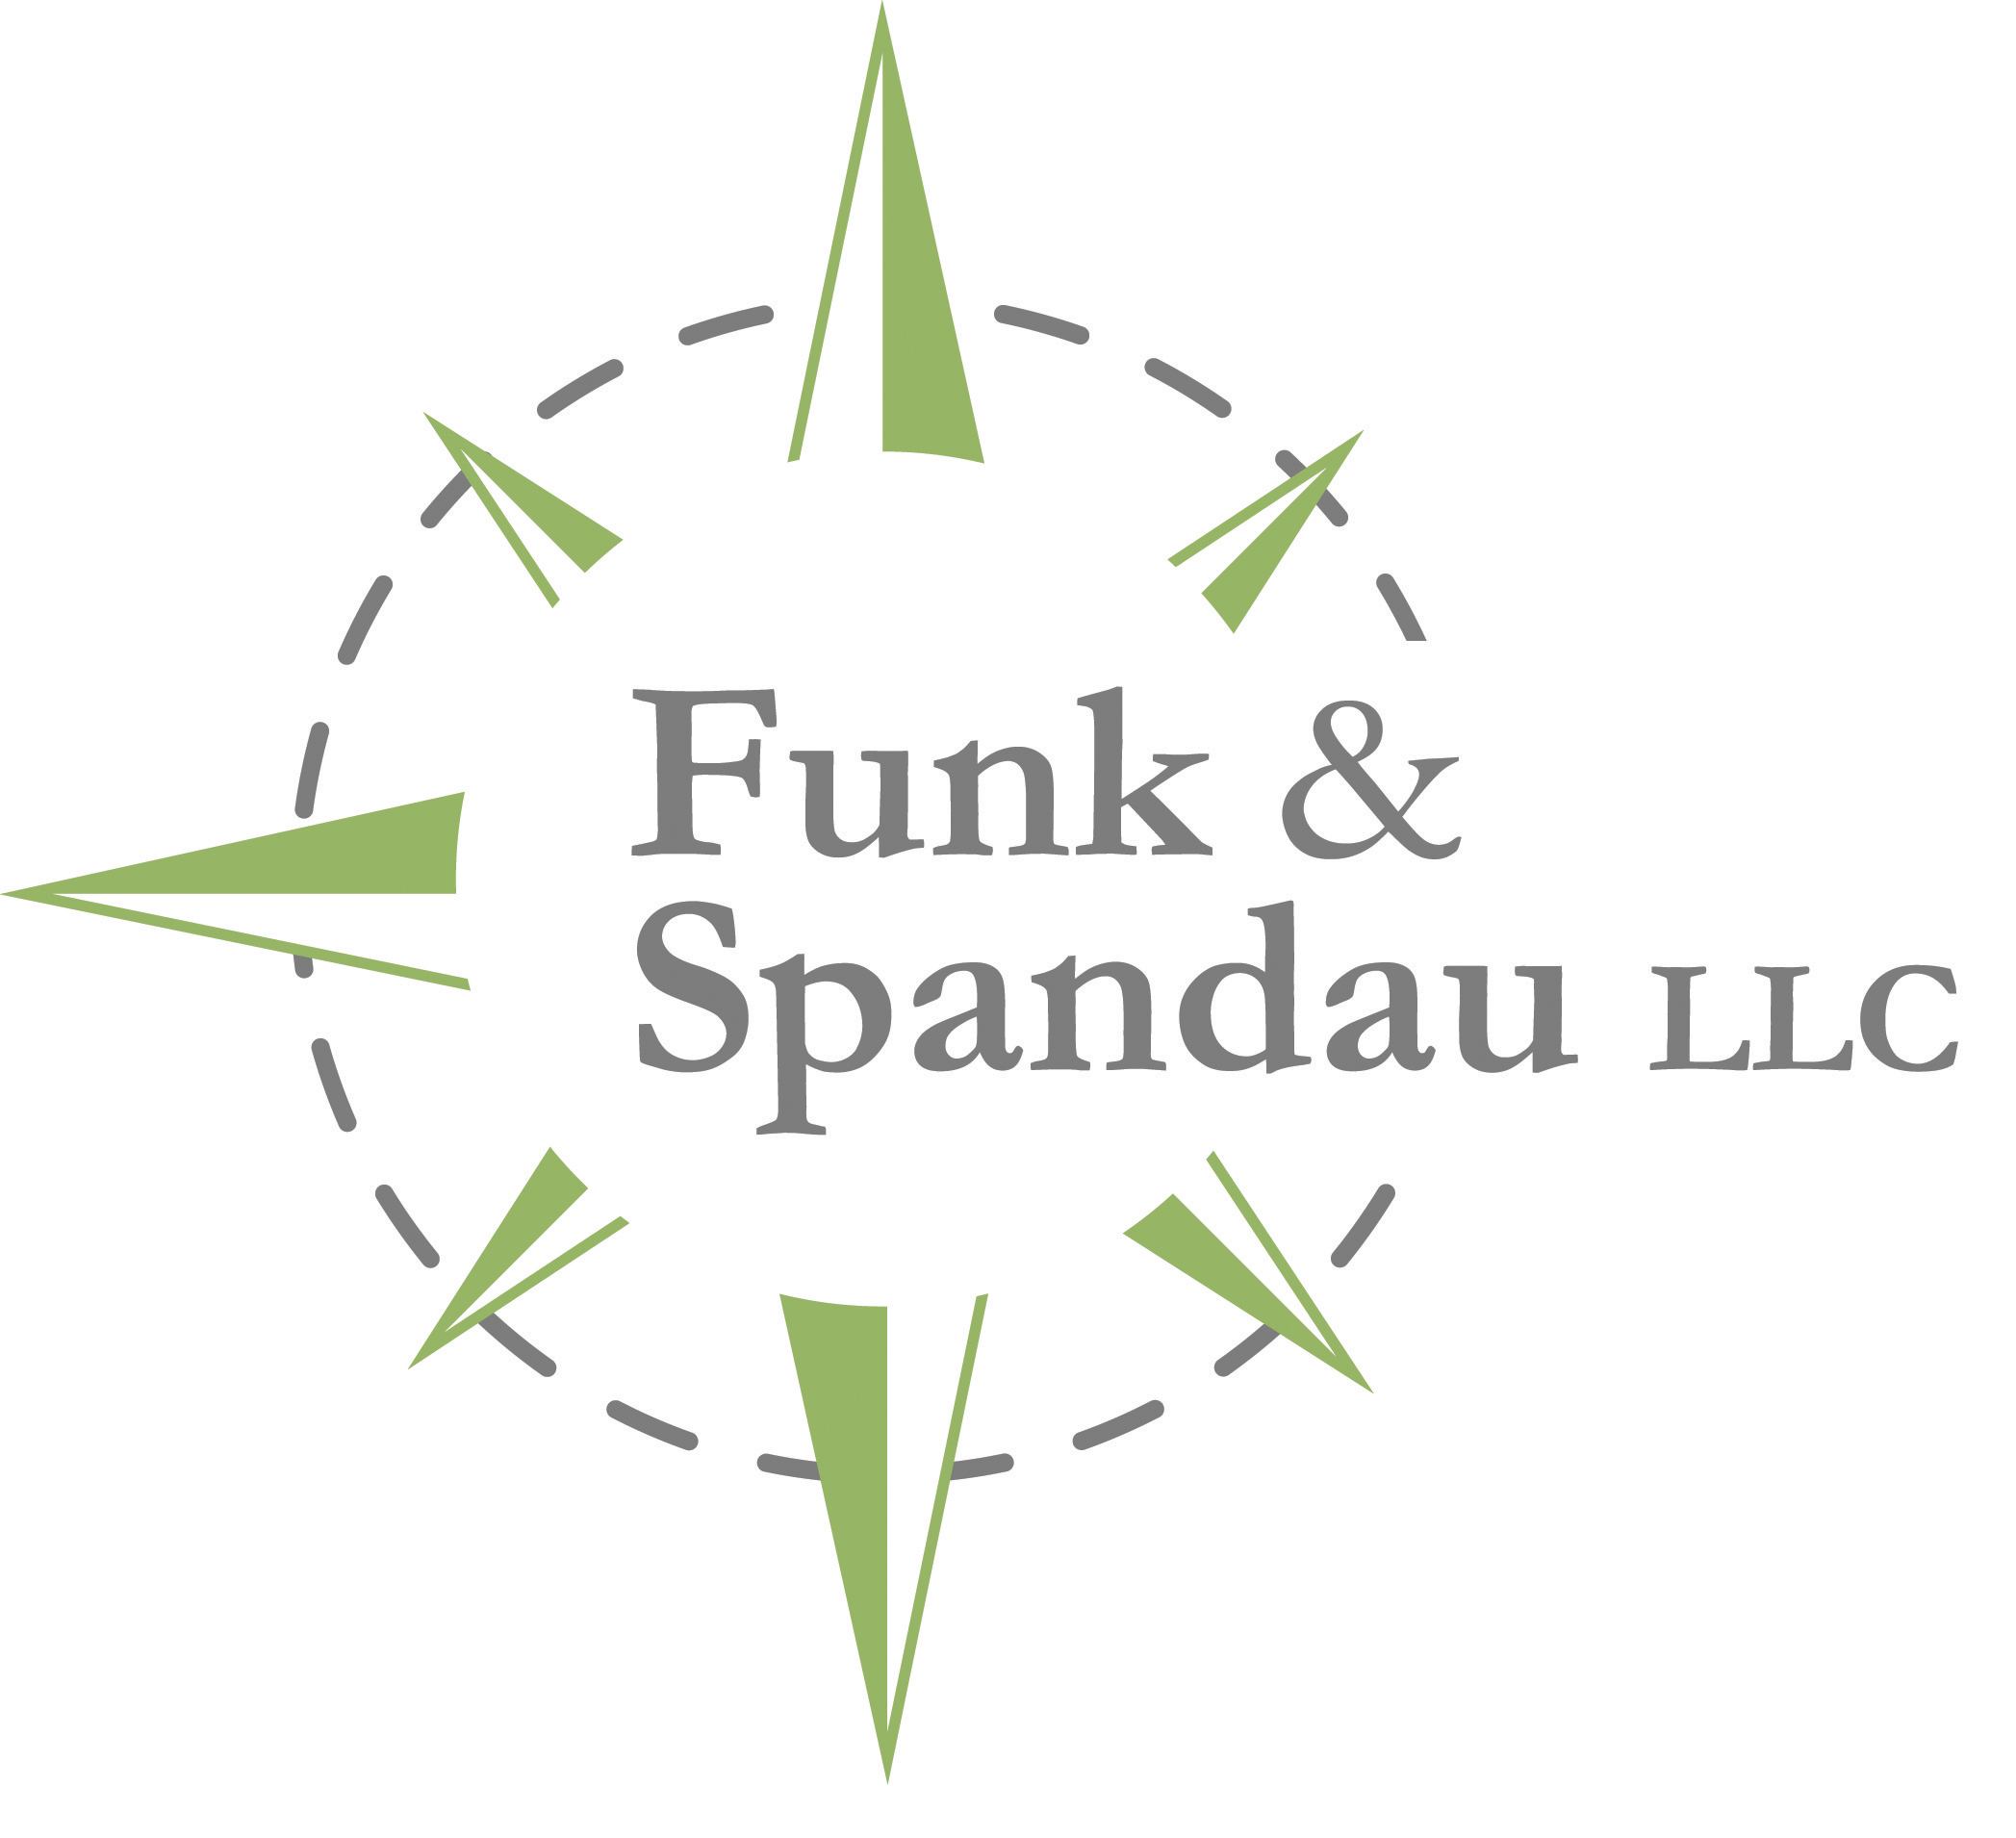 Funk & Spandau Law Firm